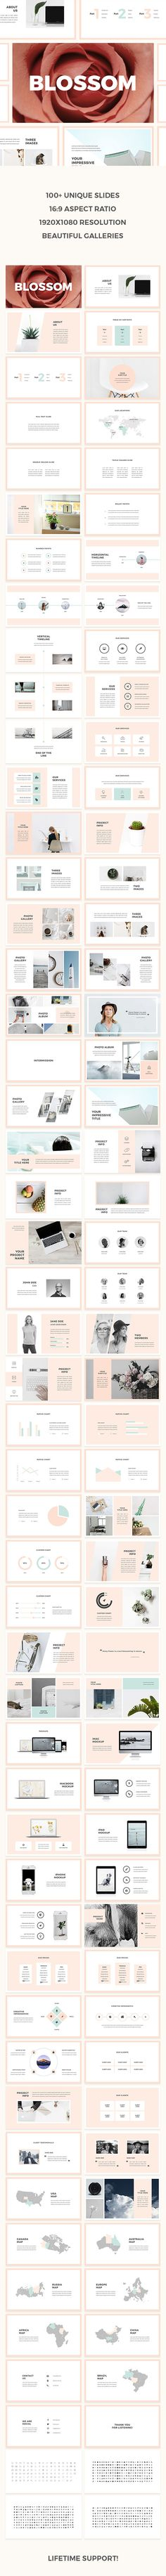 Buy Blossom PowerPoint Template by SlideStation on GraphicRiver. Blossom is a clean, elegant, simple and impressive business presentation template for PowerPoint. Keynote Design, Ppt Design, Slide Design, Layout Design, Graphic Design, Presentation Deck, Business Presentation Templates, Portfolio Presentation, Powerpoint Tutorial